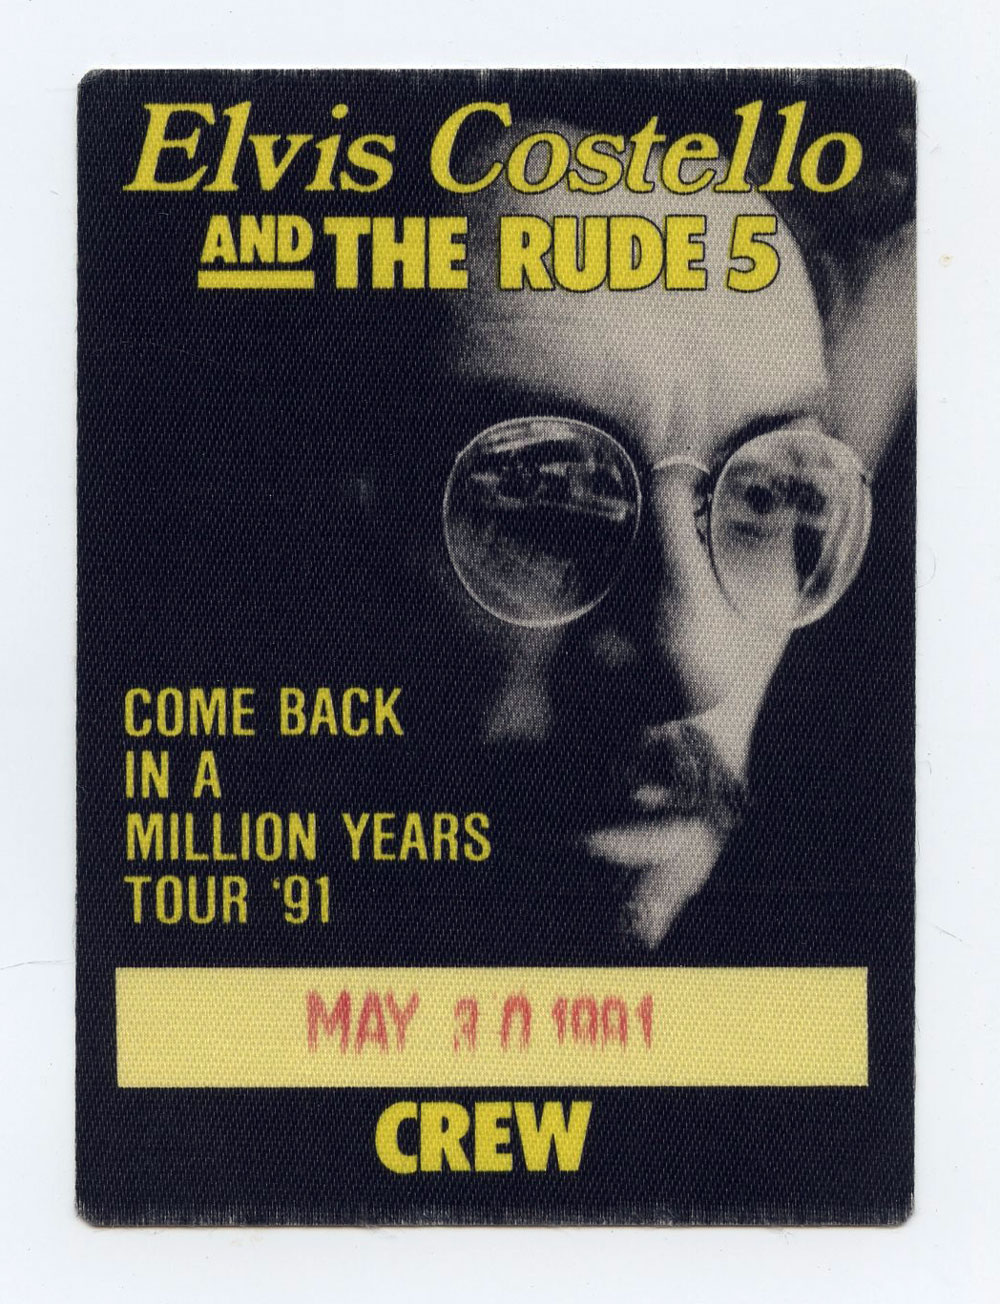 Elvis Costello Backstage Pass Come Back in a Million Years Tour 91